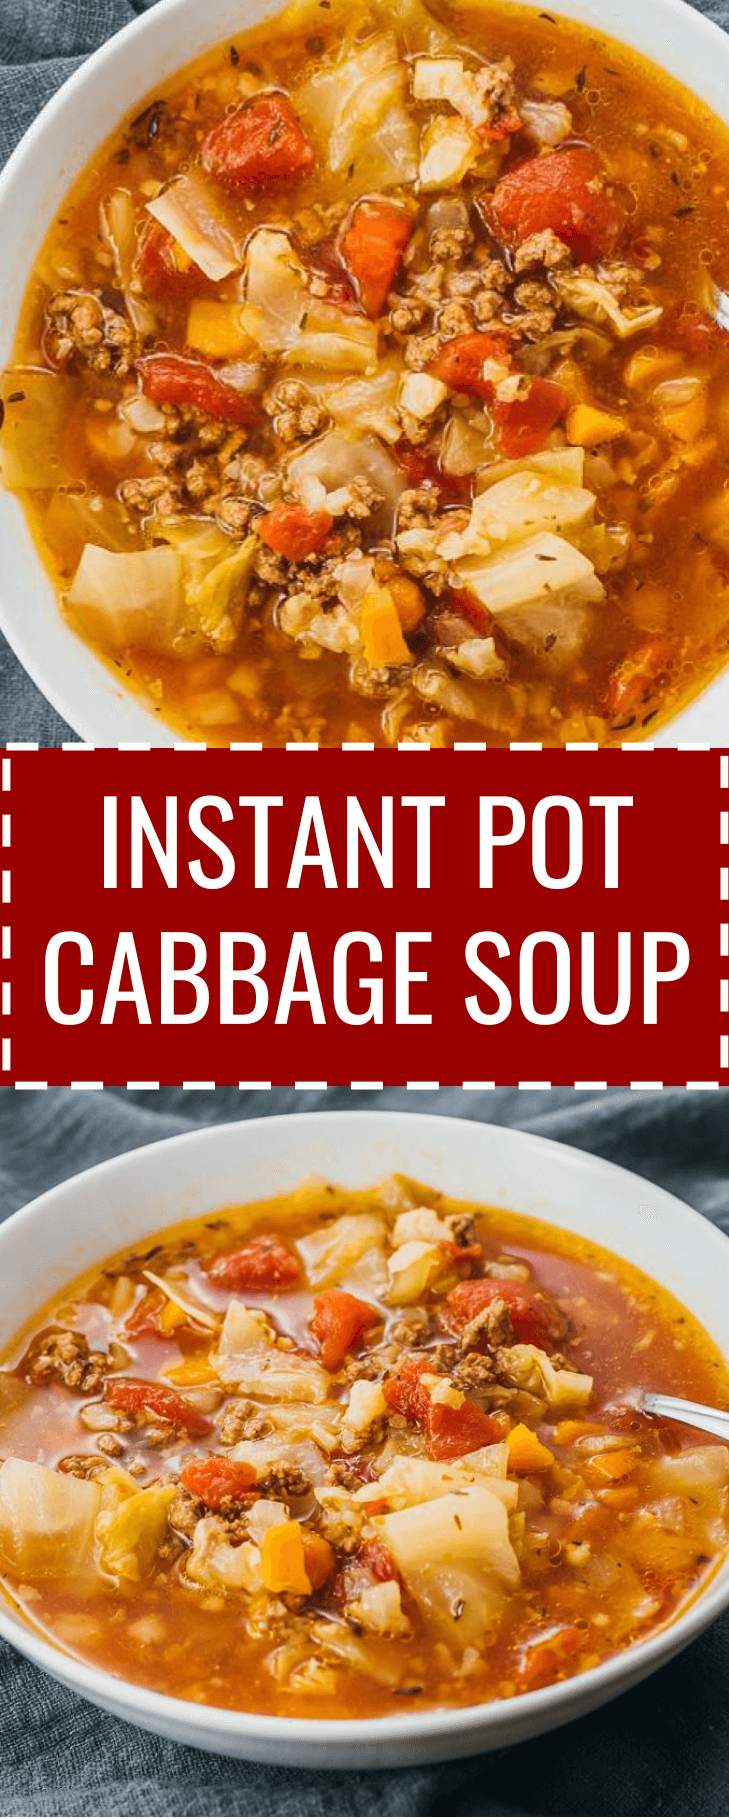 Cabbage Soup Diet Recipe: This Hearty Instant Pot Cabbage Soup Recipe With Ground